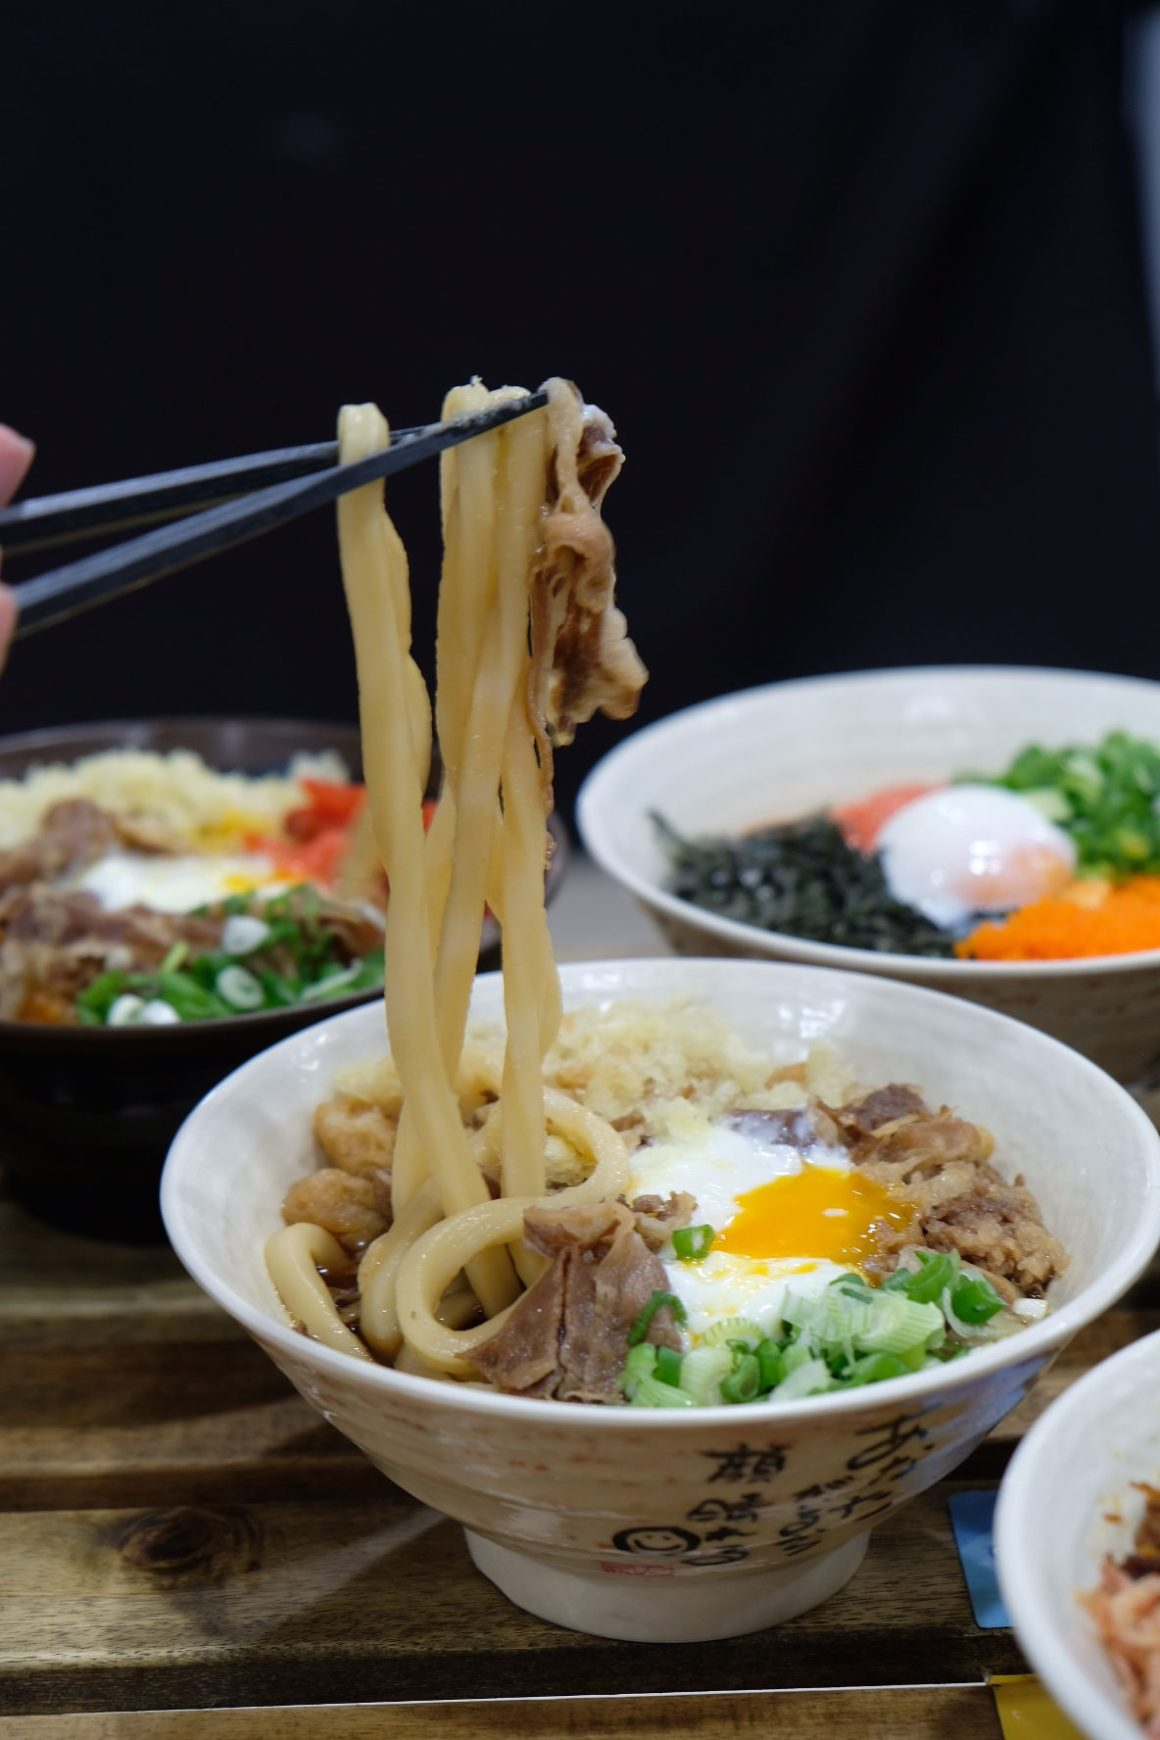 2019 Top 5 Udon At Tamoya Udon Singapore - Pulling Udon